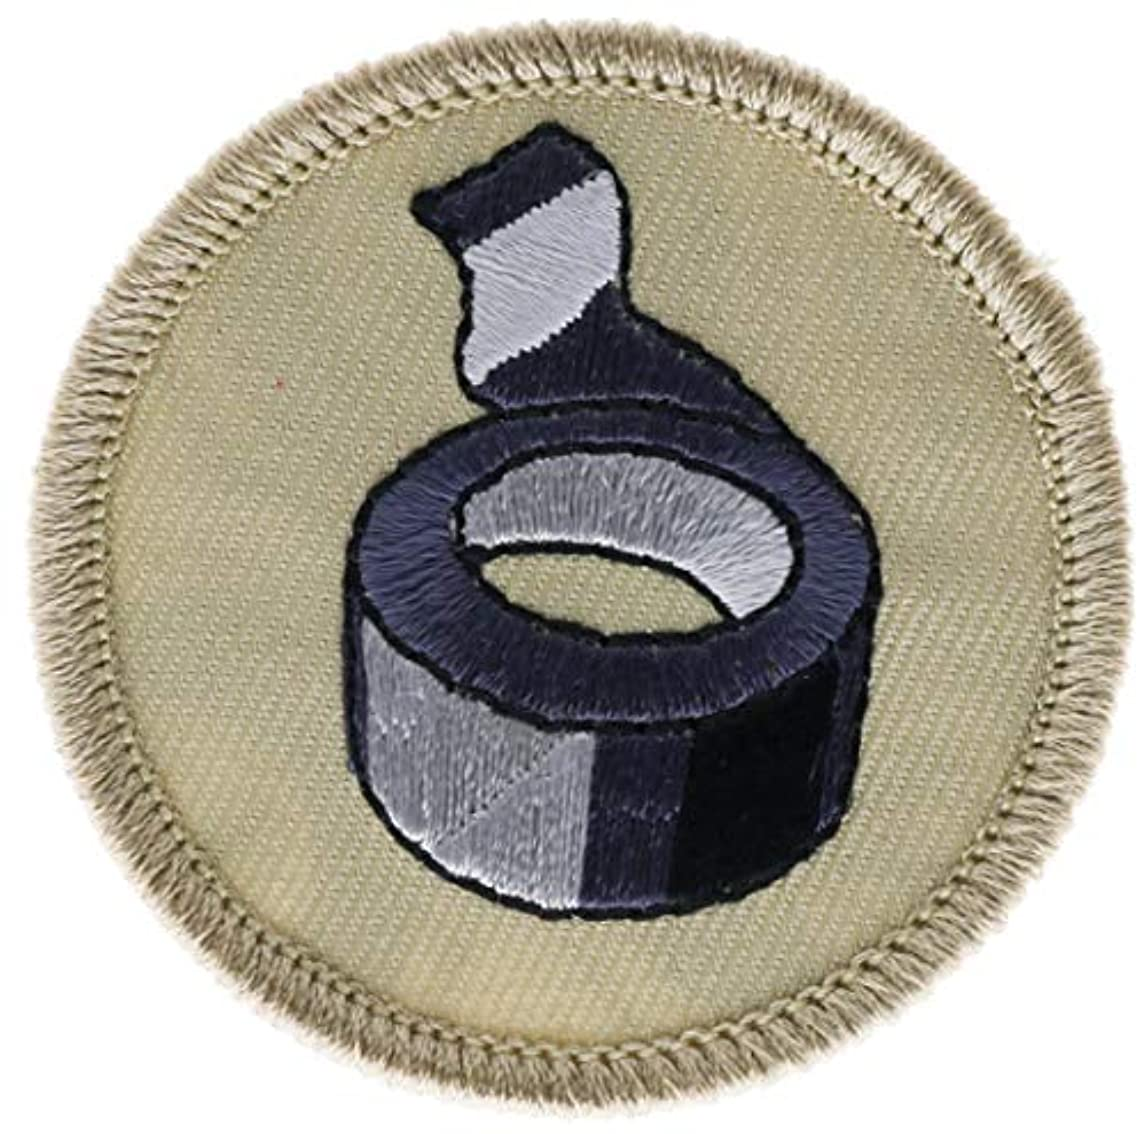 Duct Tape Patrol Official BSA Patch Embroidered 2